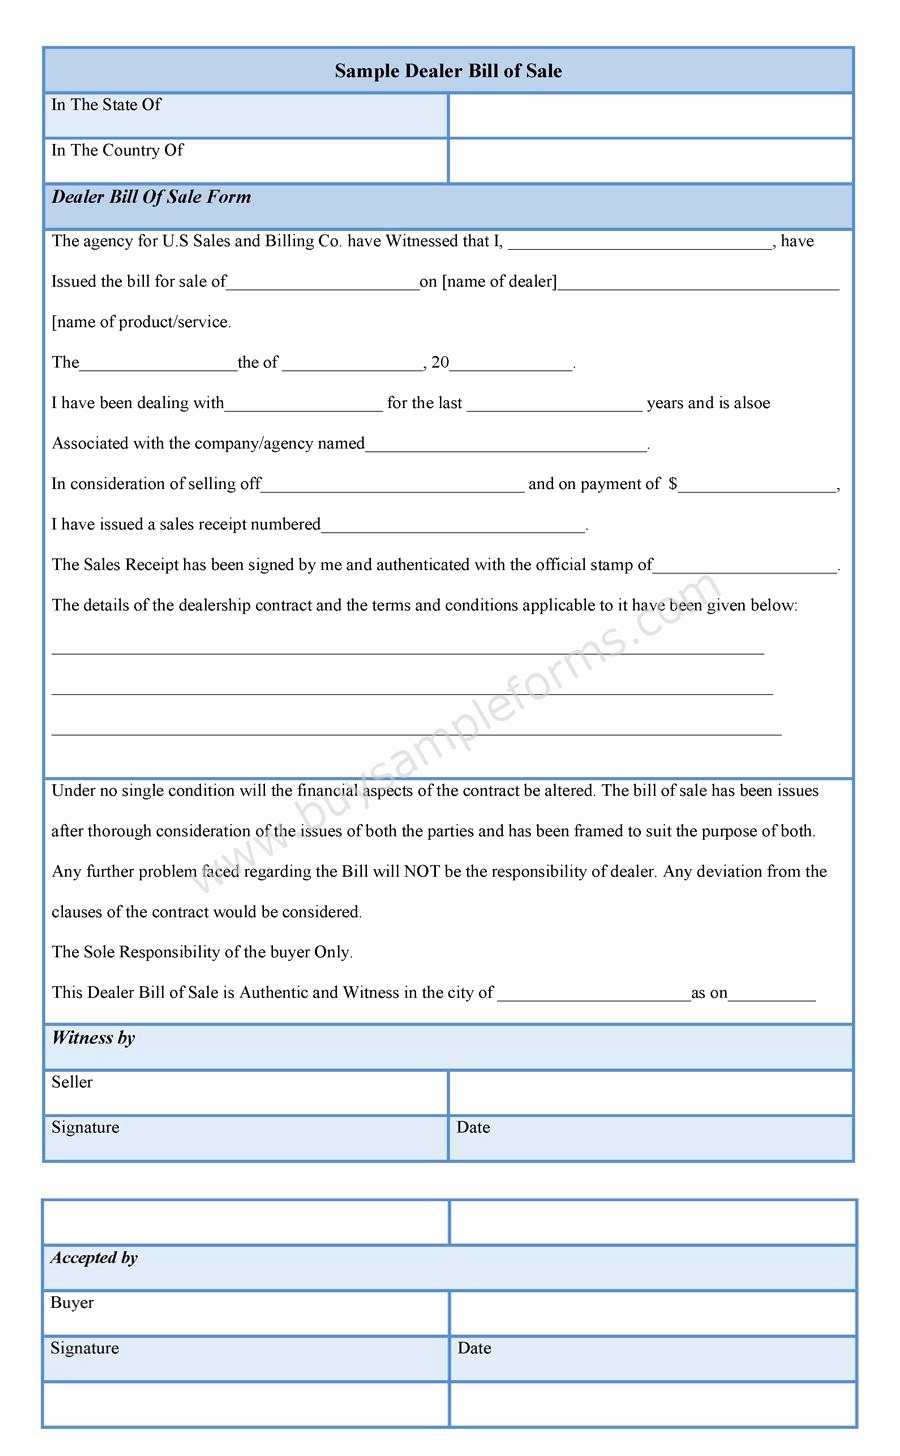 Bill Of Sale Sample Pdf Awesome Dealer Bill Of Sale form